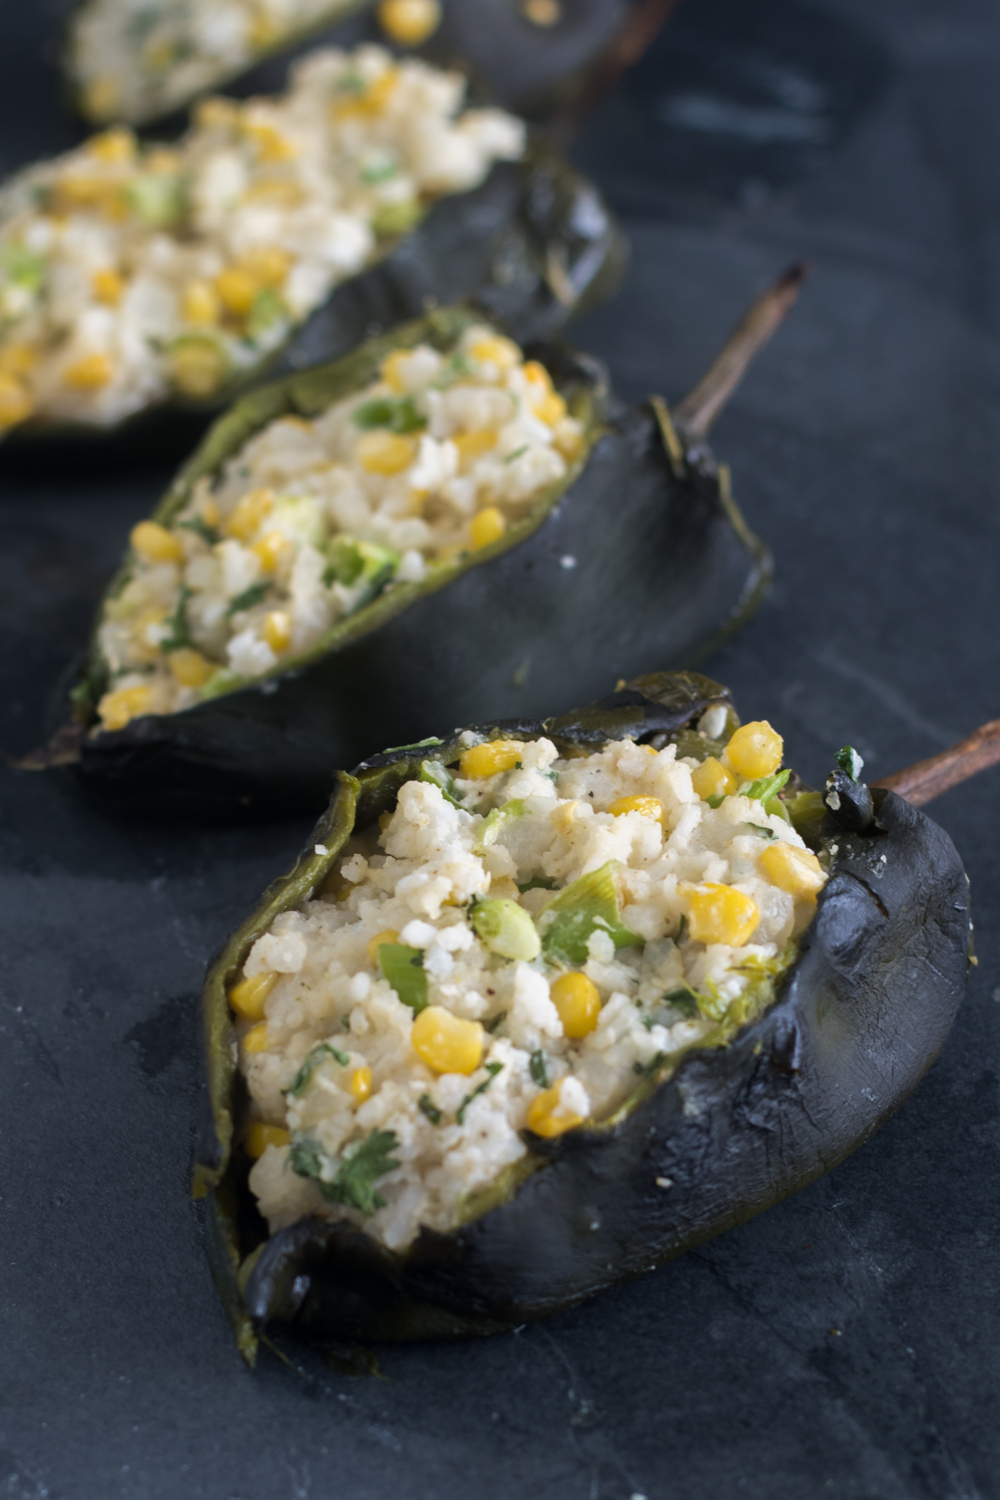 Roasted poblano peppers are stuffed with a creamy, rice filling. I like to serve these with an avocado and tomatillo salsa.